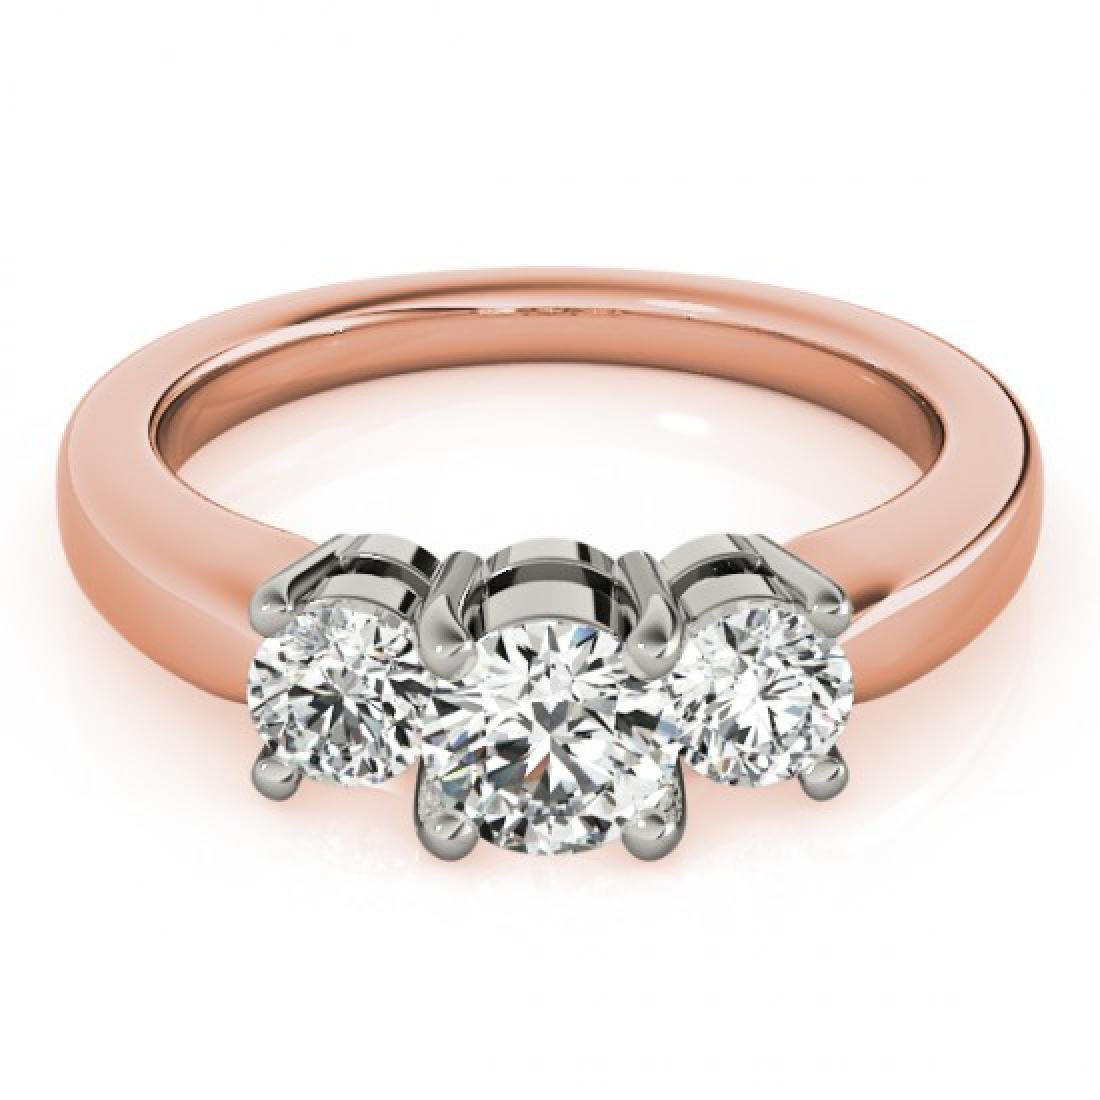 0.5 CTW Certified VS/SI Diamond 3 Stone Solitaire Ring